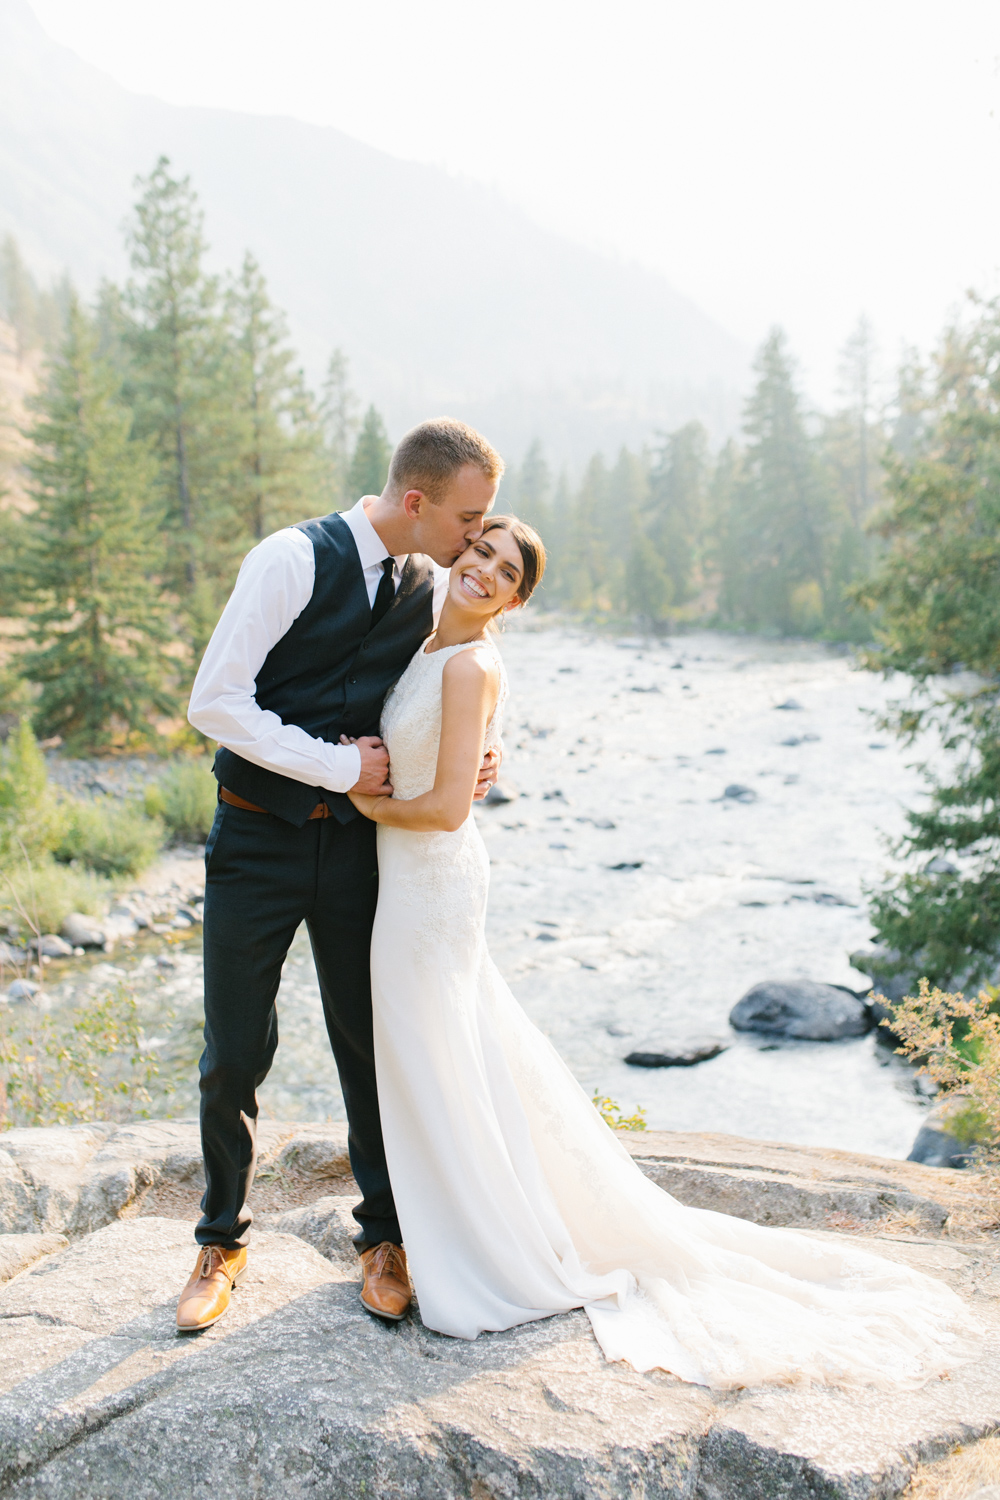 Grey and White Wedding in the Mountains of Leavenworth, Washington | Sleeping Lady | Classic and Timeless Wedding | VSCO | Stunning Mountain Top Bride and Groom Portraits on the Icicle River.jpg-3313.jpg